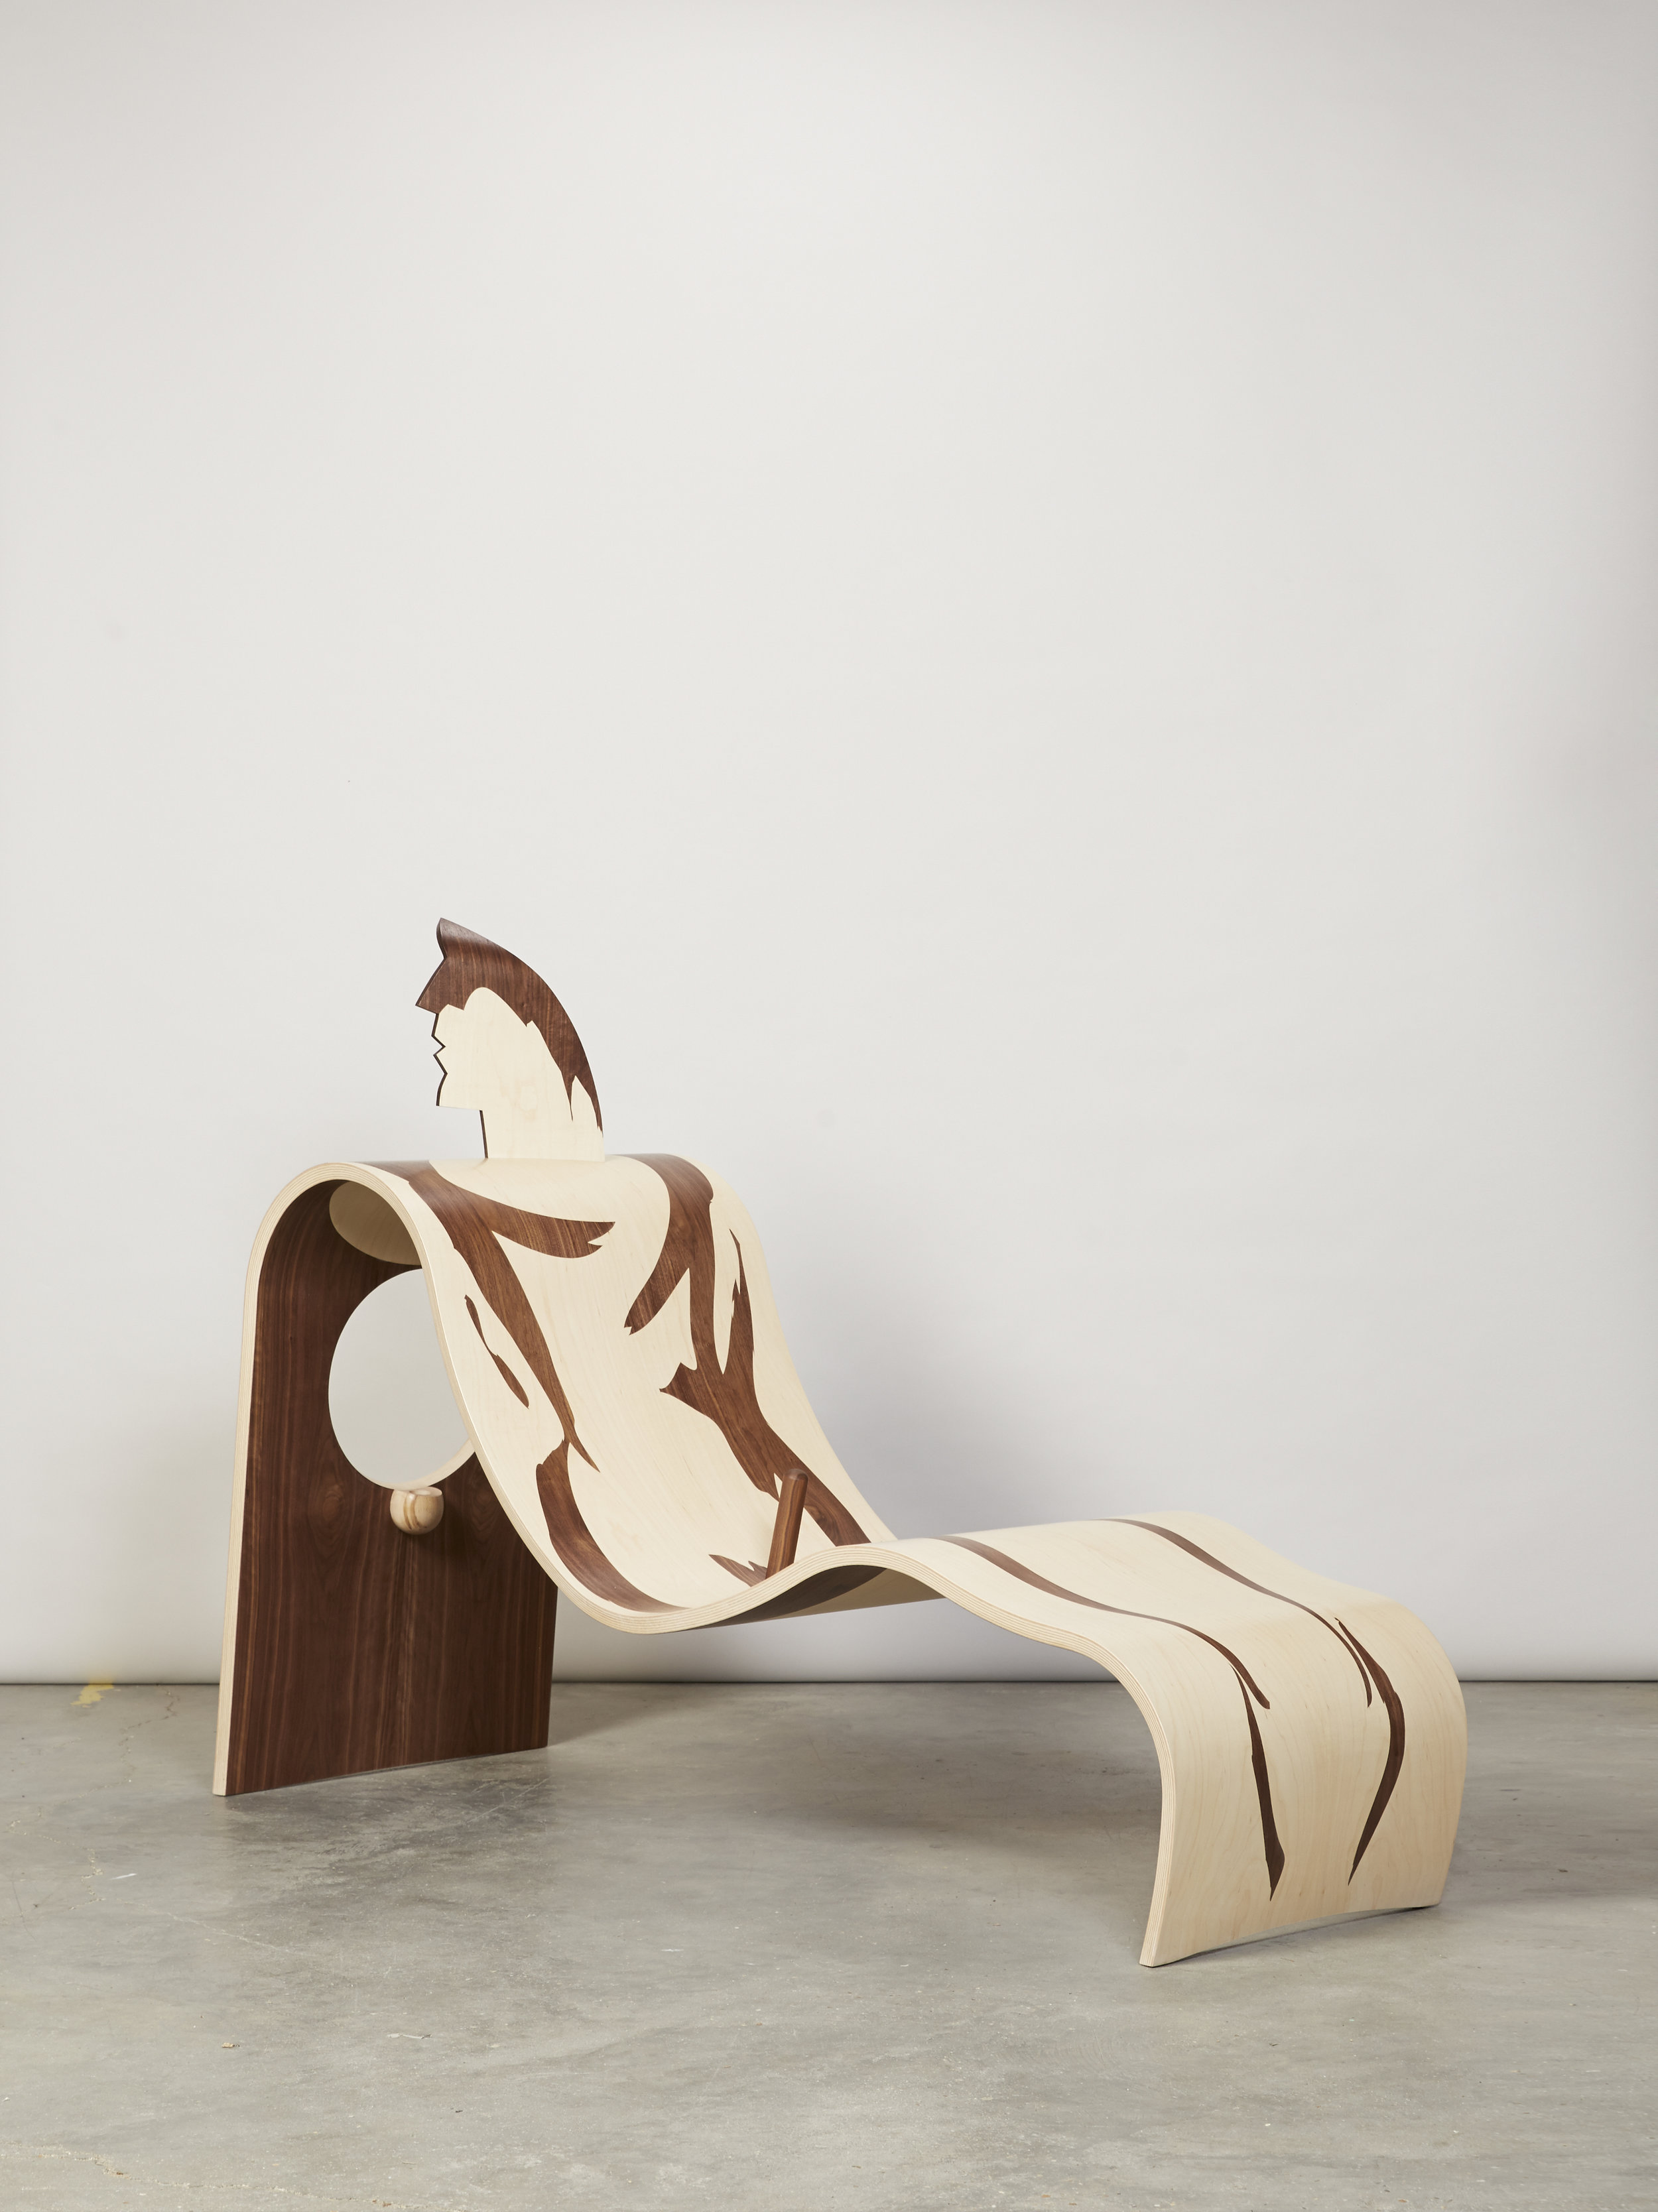 Wish List_Jones_The Hole Chair_Petr Krejci Photography (27).jpg